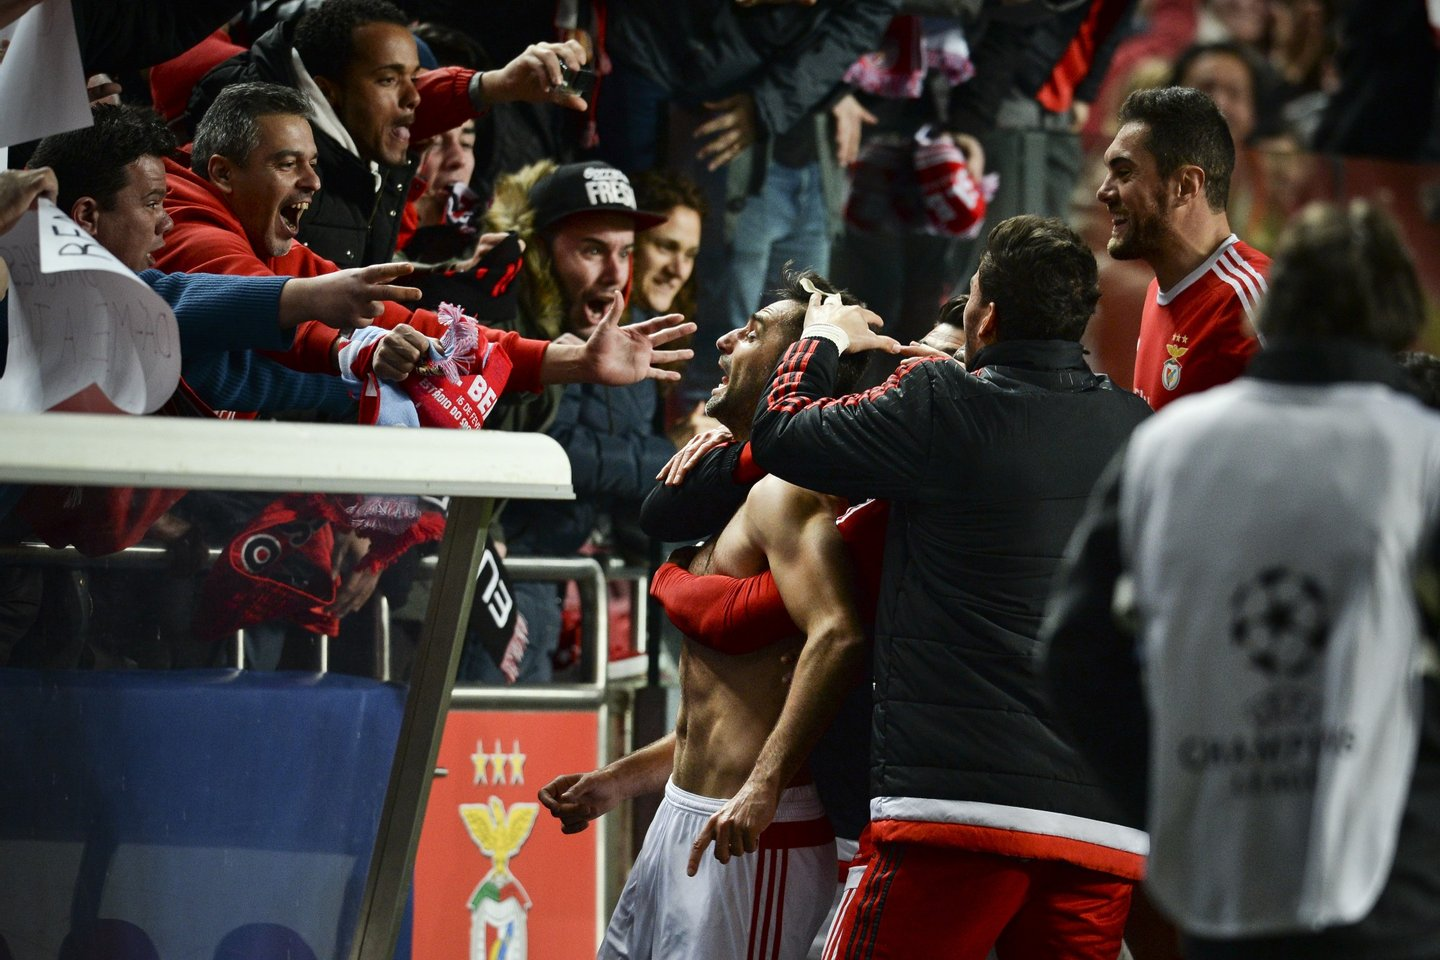 Benfica's Brazilian forward Jonas Oliveira (C) celebrates with the supporters after scroing during the UEFA Champions League round of 16 football match SL Benfica vs FC Zenith Saint-Petersburg at the Luz stadium in Lisbon on February 16, 2016. / AFP / PATRICIA DE MELO MOREIRA (Photo credit should read PATRICIA DE MELO MOREIRA/AFP/Getty Images)